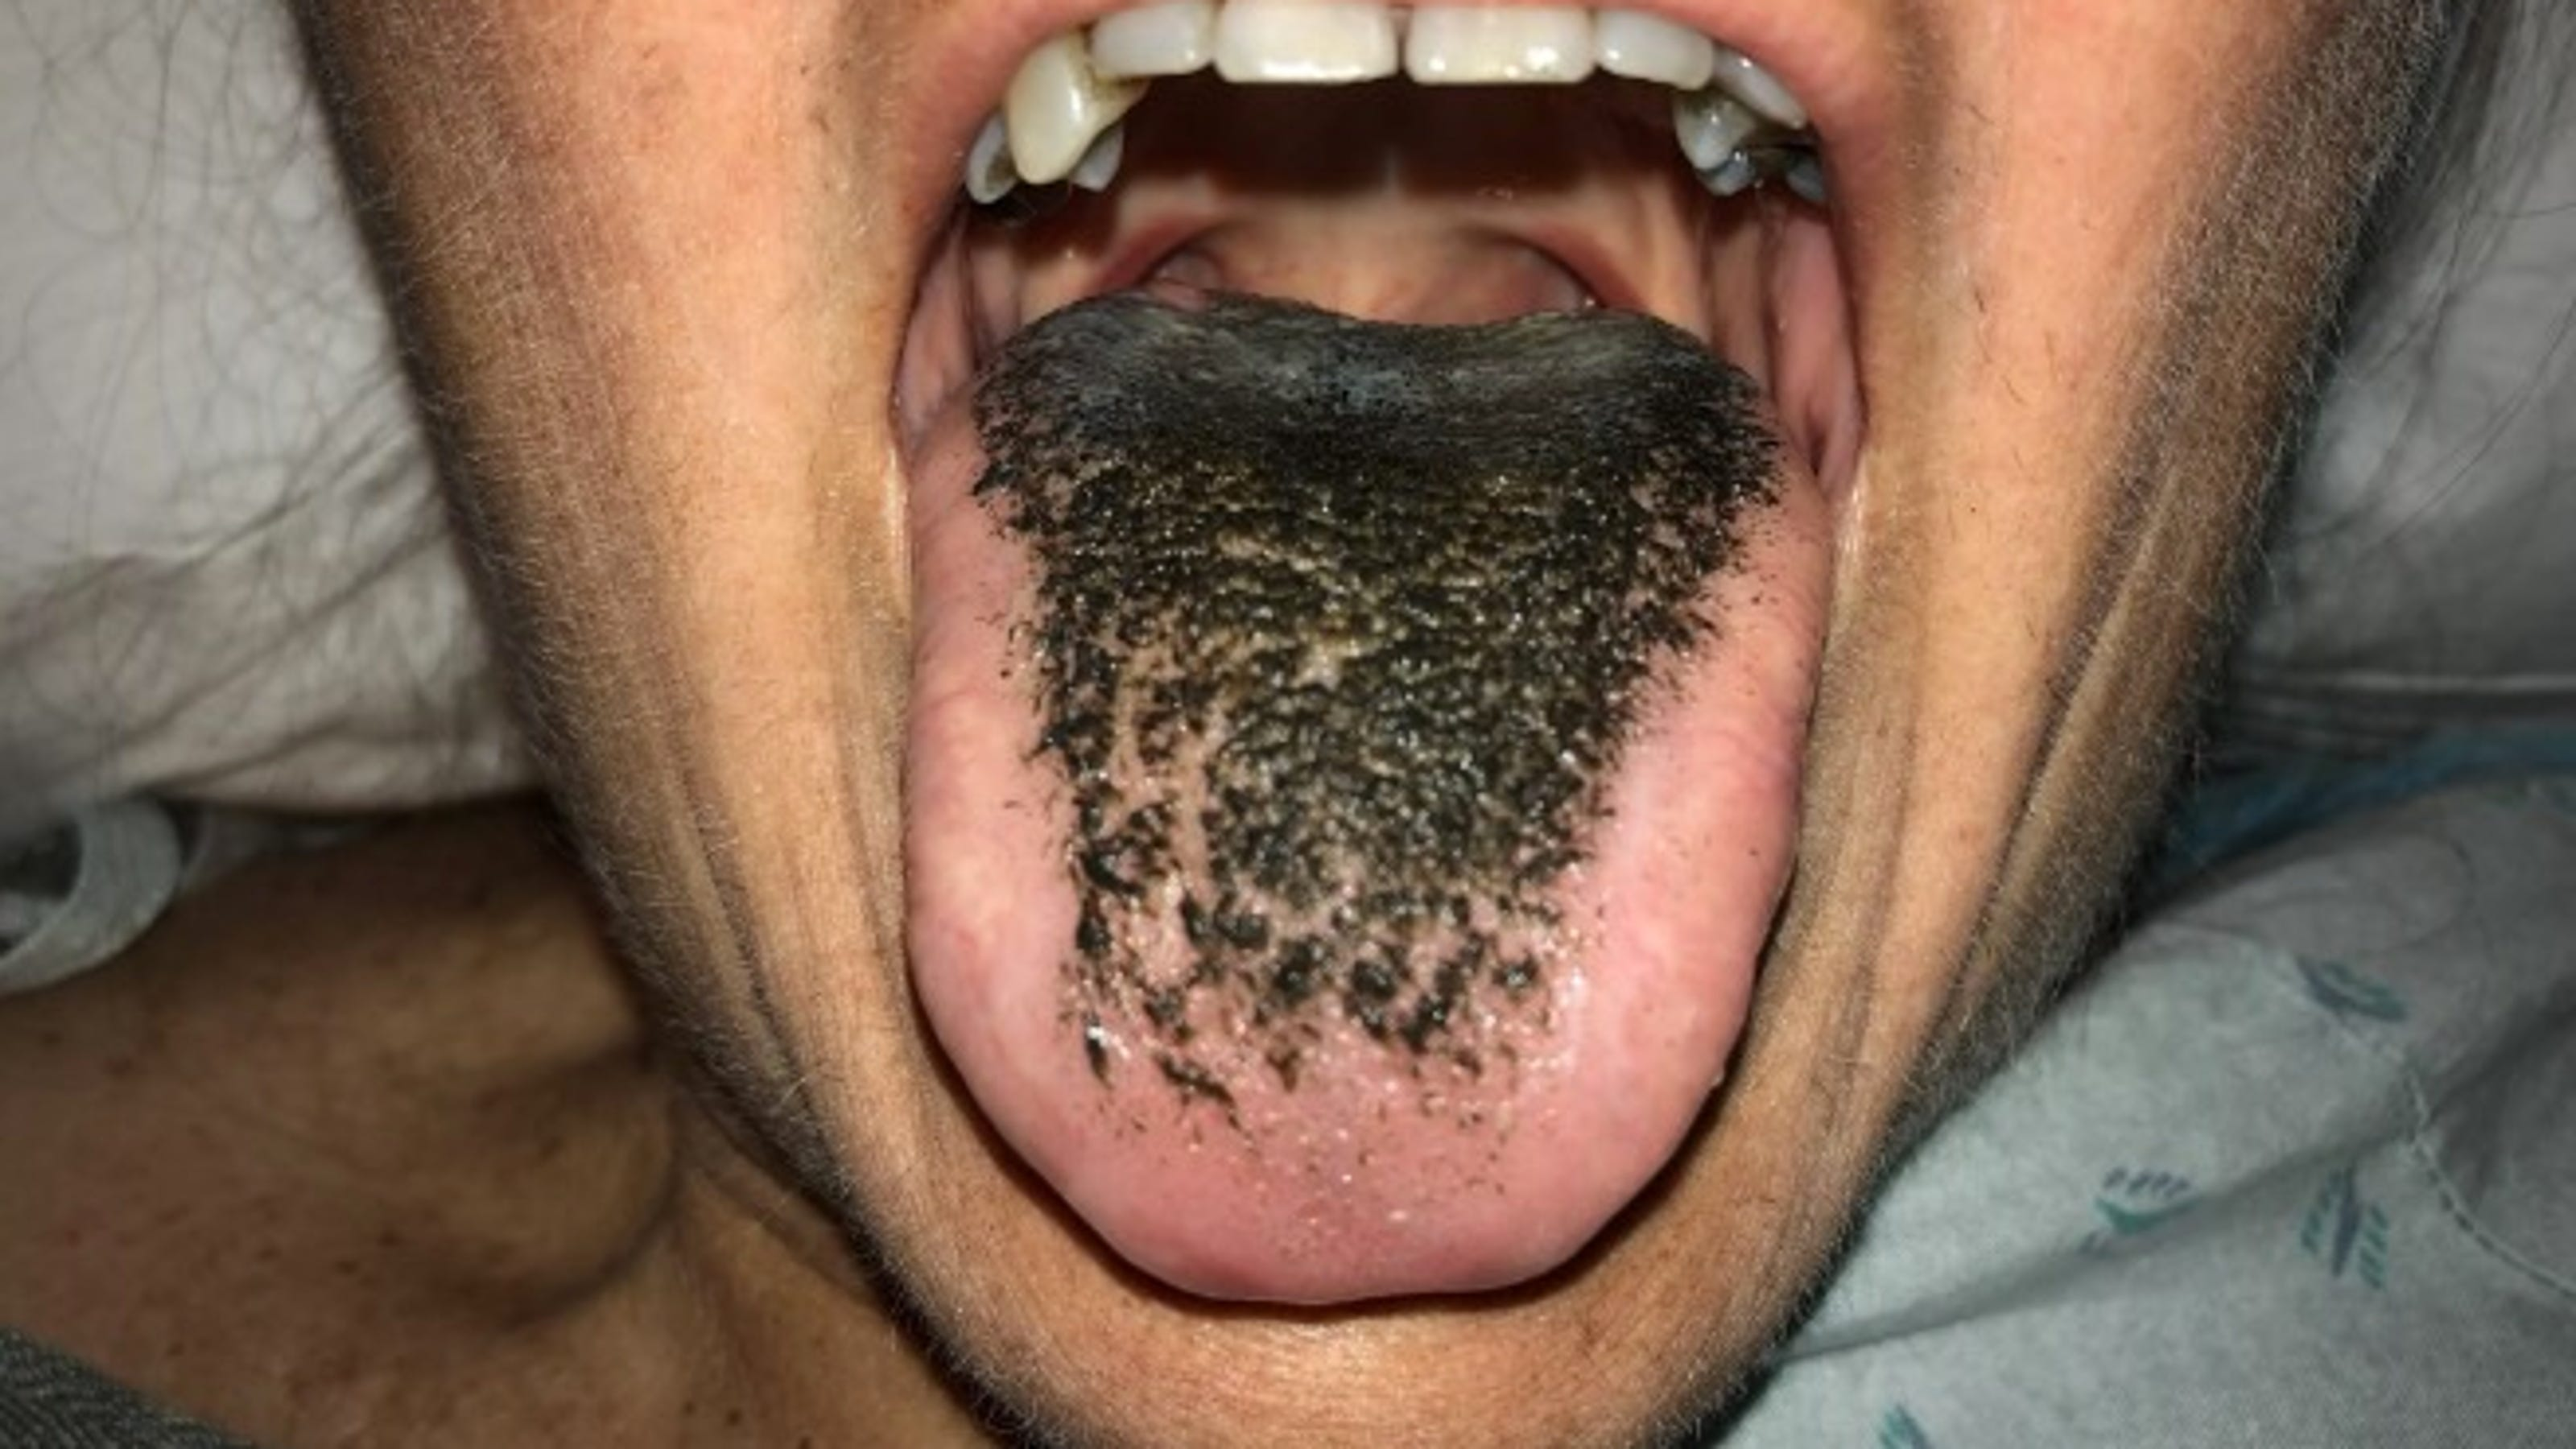 Woman suffers from 'black hairy tongue' after car accident